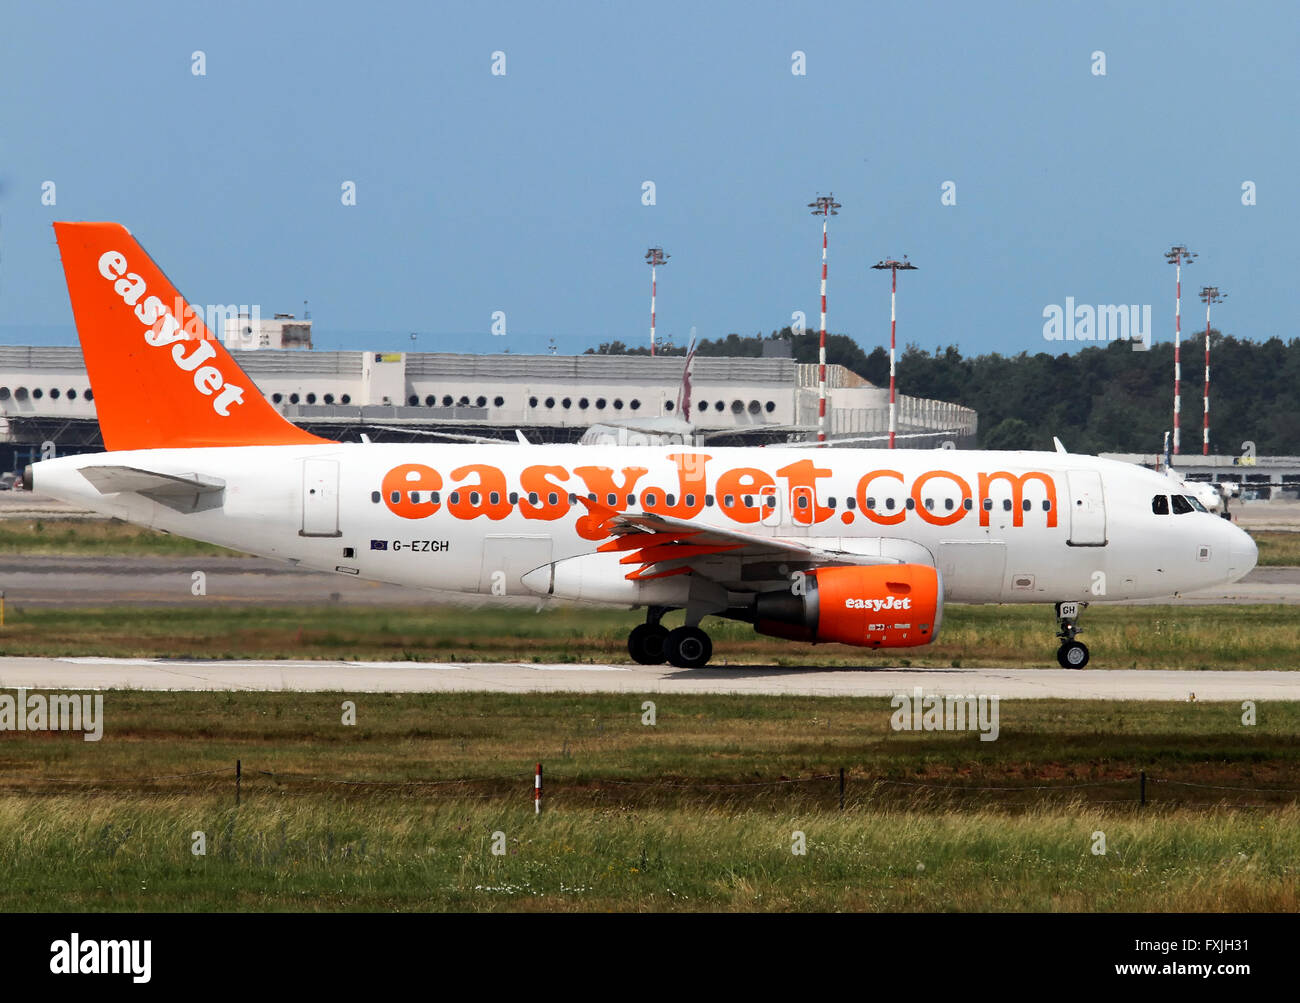 EasyJet, Airbus A319-111 on the ground at  Linate, Milan, Italy - Stock Image